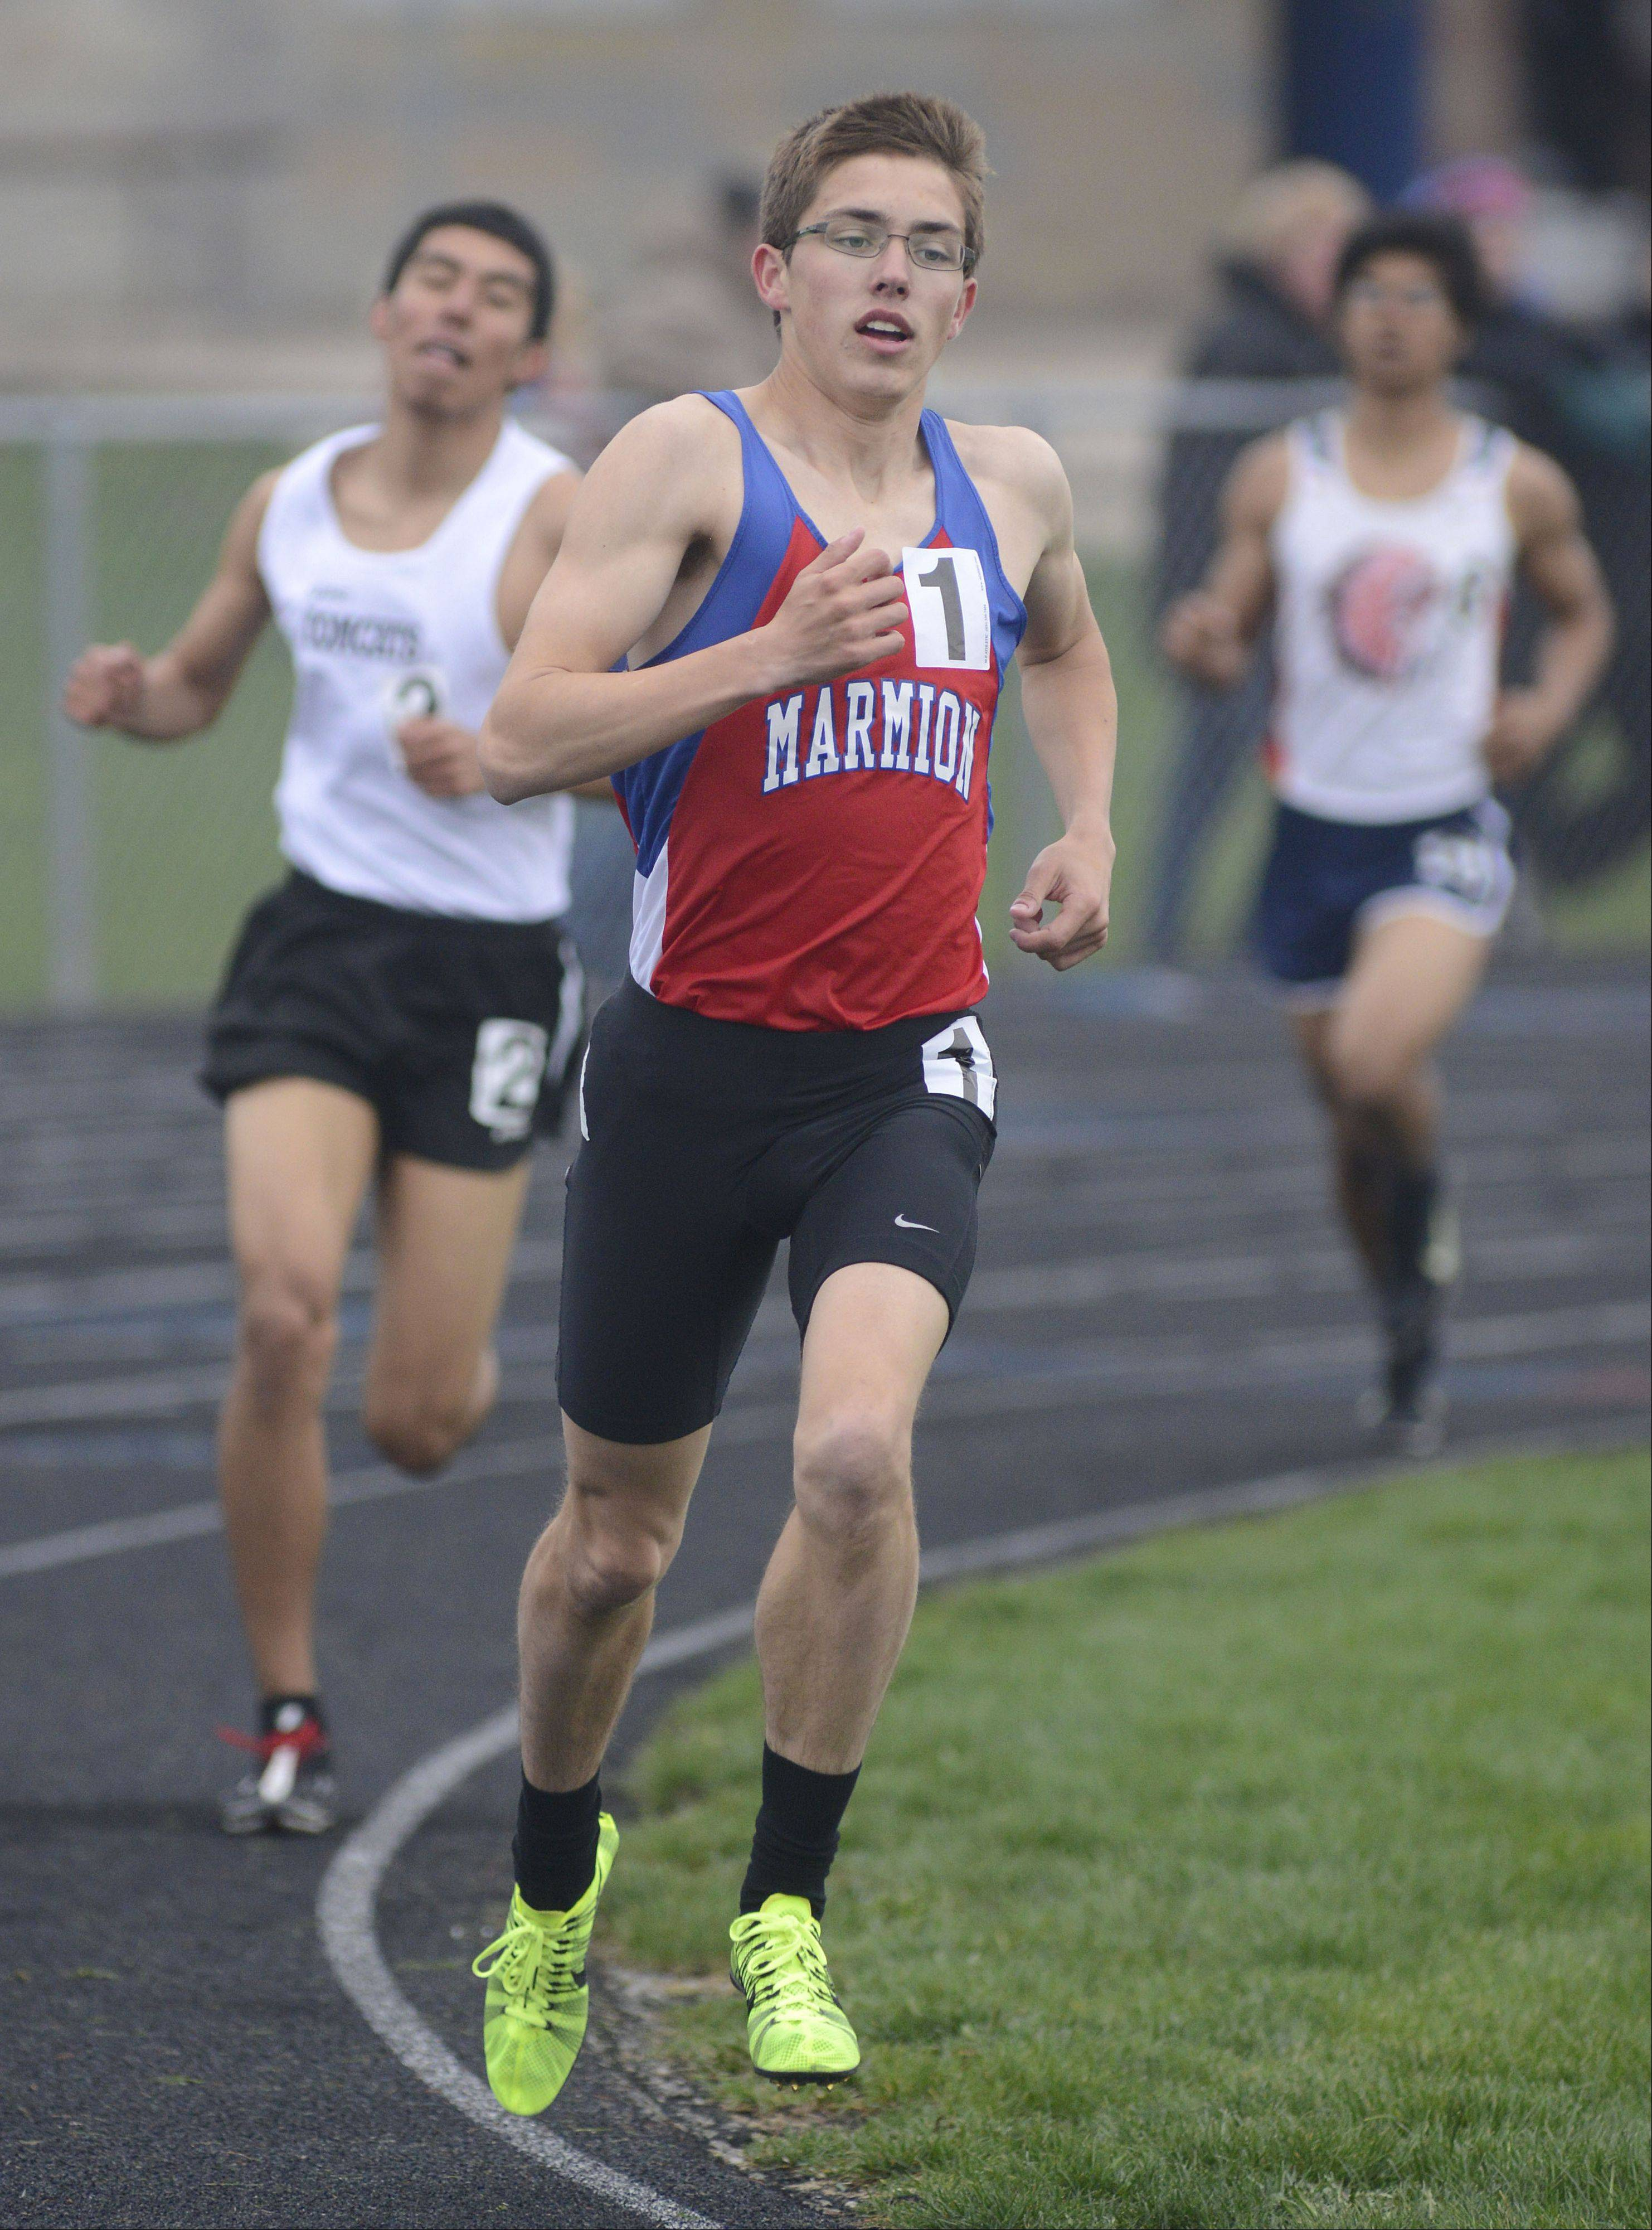 Marmion's John Graft takes the win in the 3,200-meter run at the Kane County boys track meet at Burlington Central on Friday.